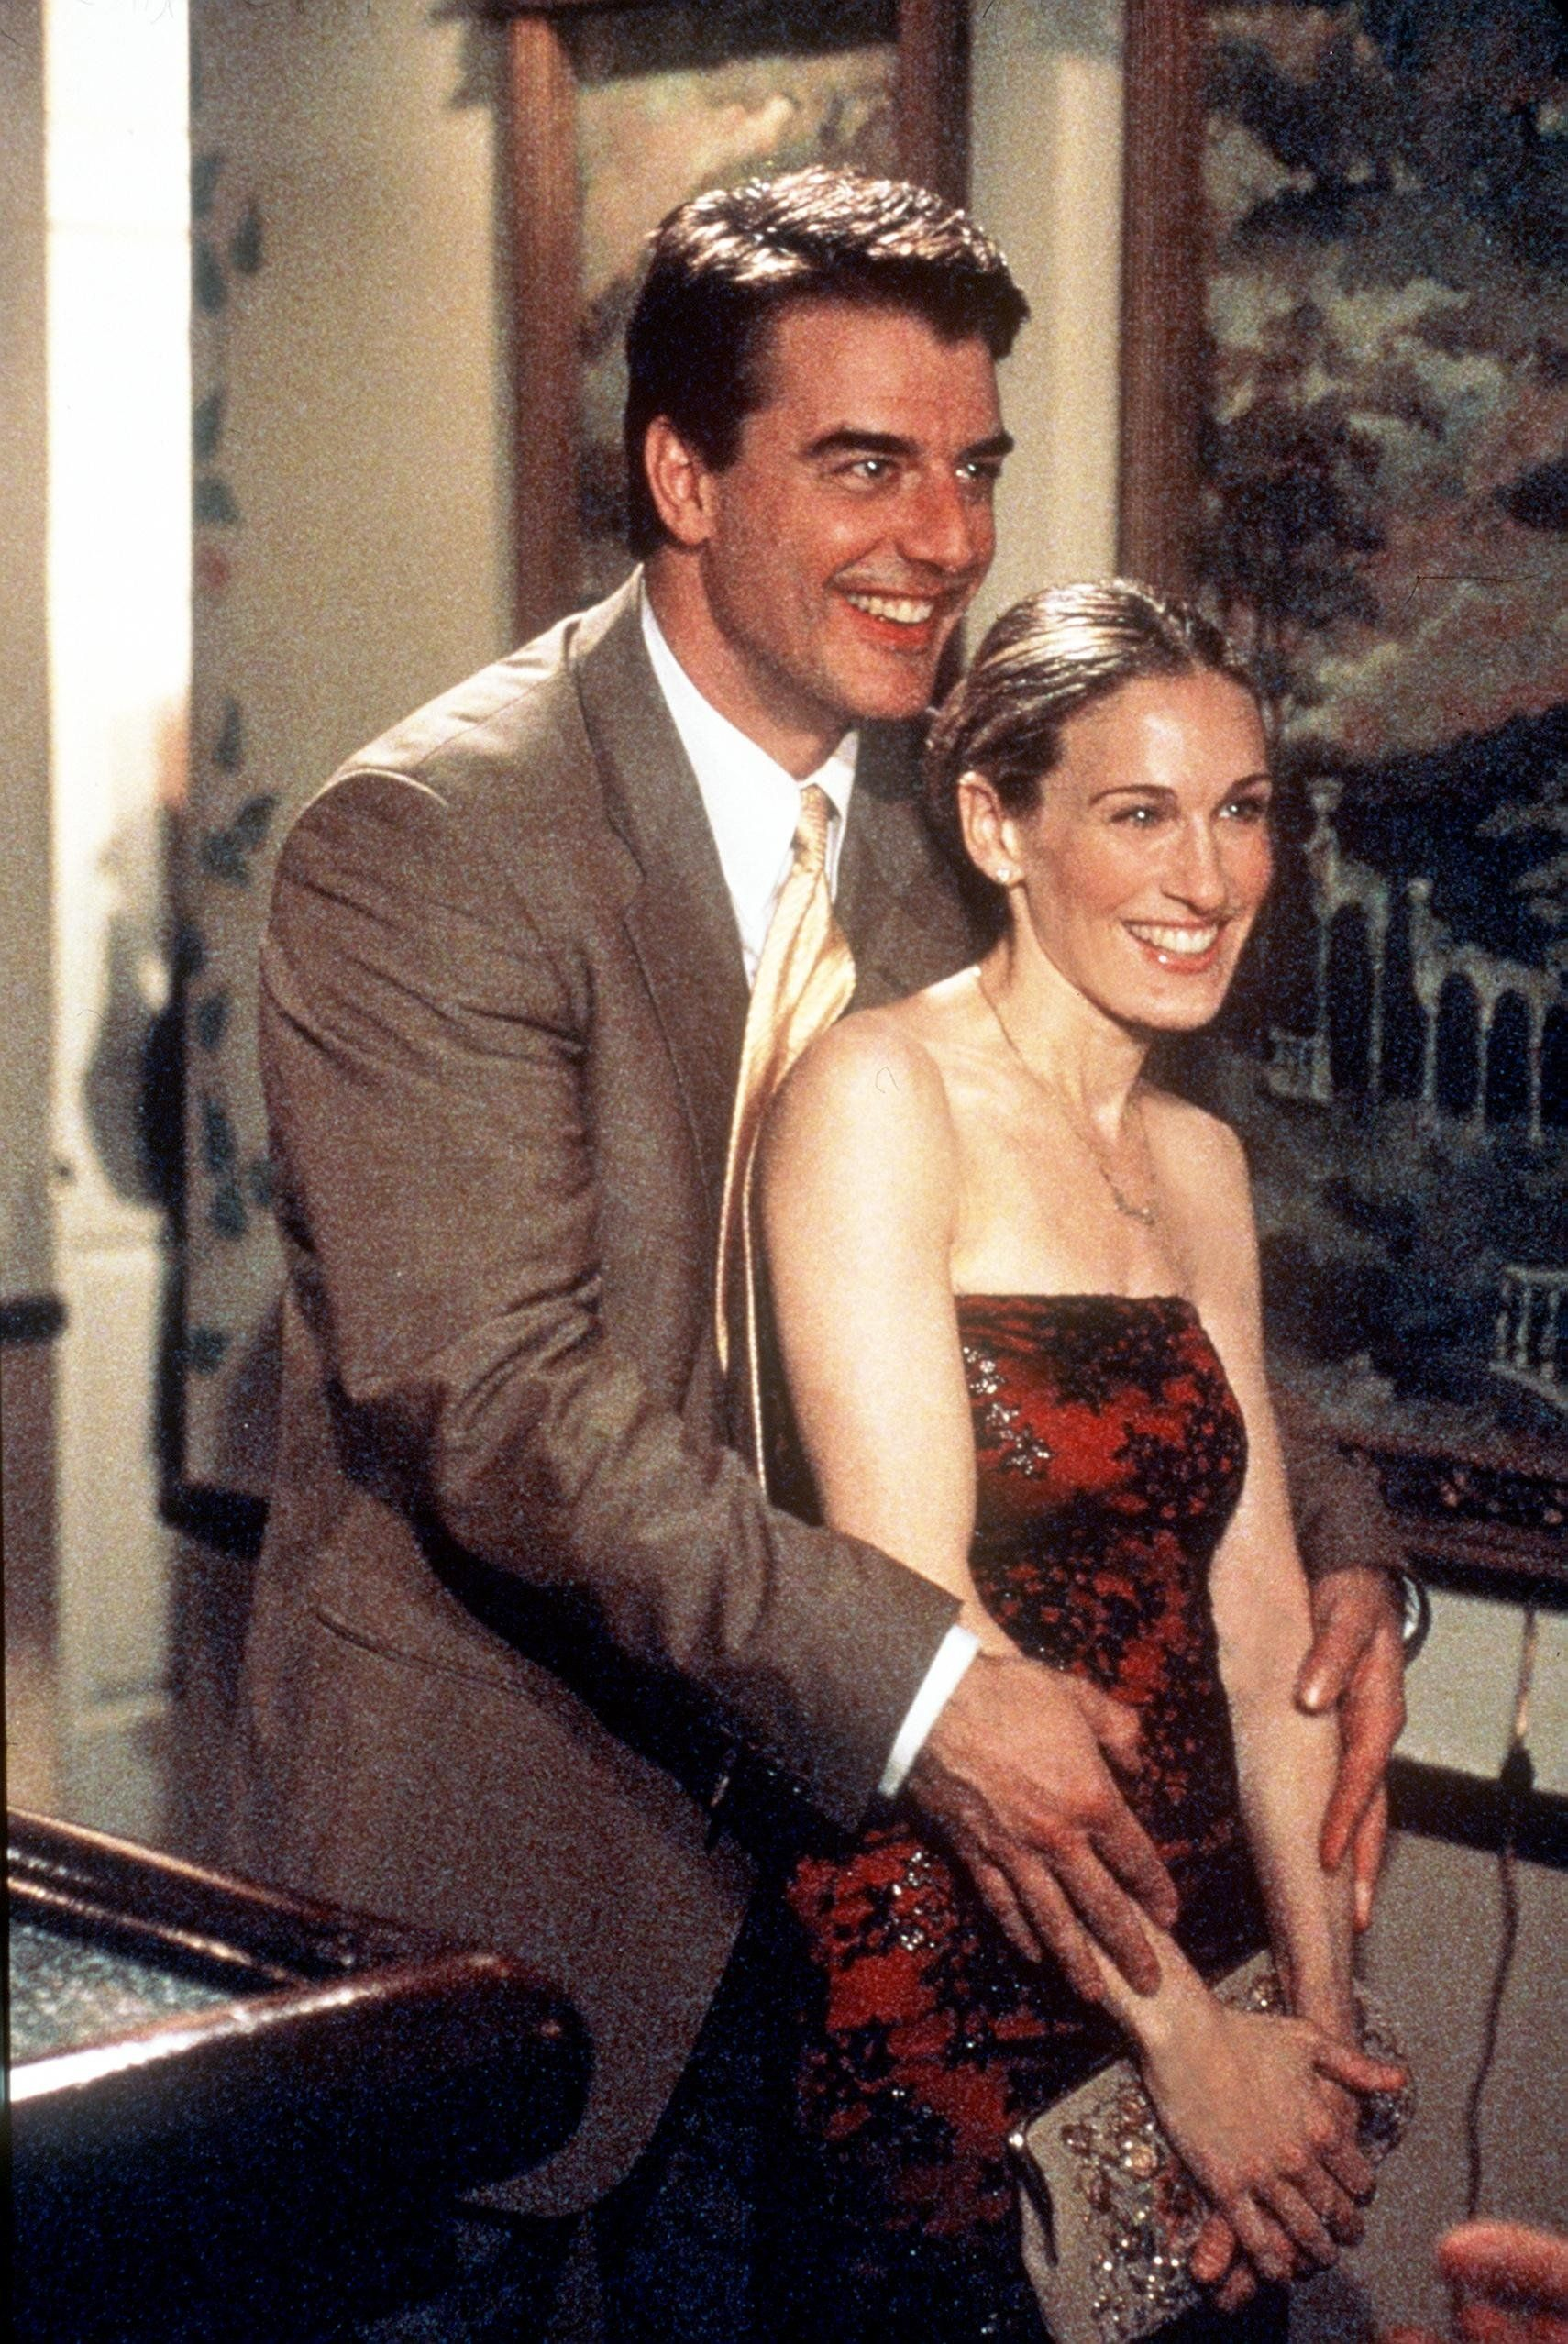 Chris Noth and Sarah Jessica Parker star in 'Sex And The City' ('The Man, The Myth, The Viagra' episode).